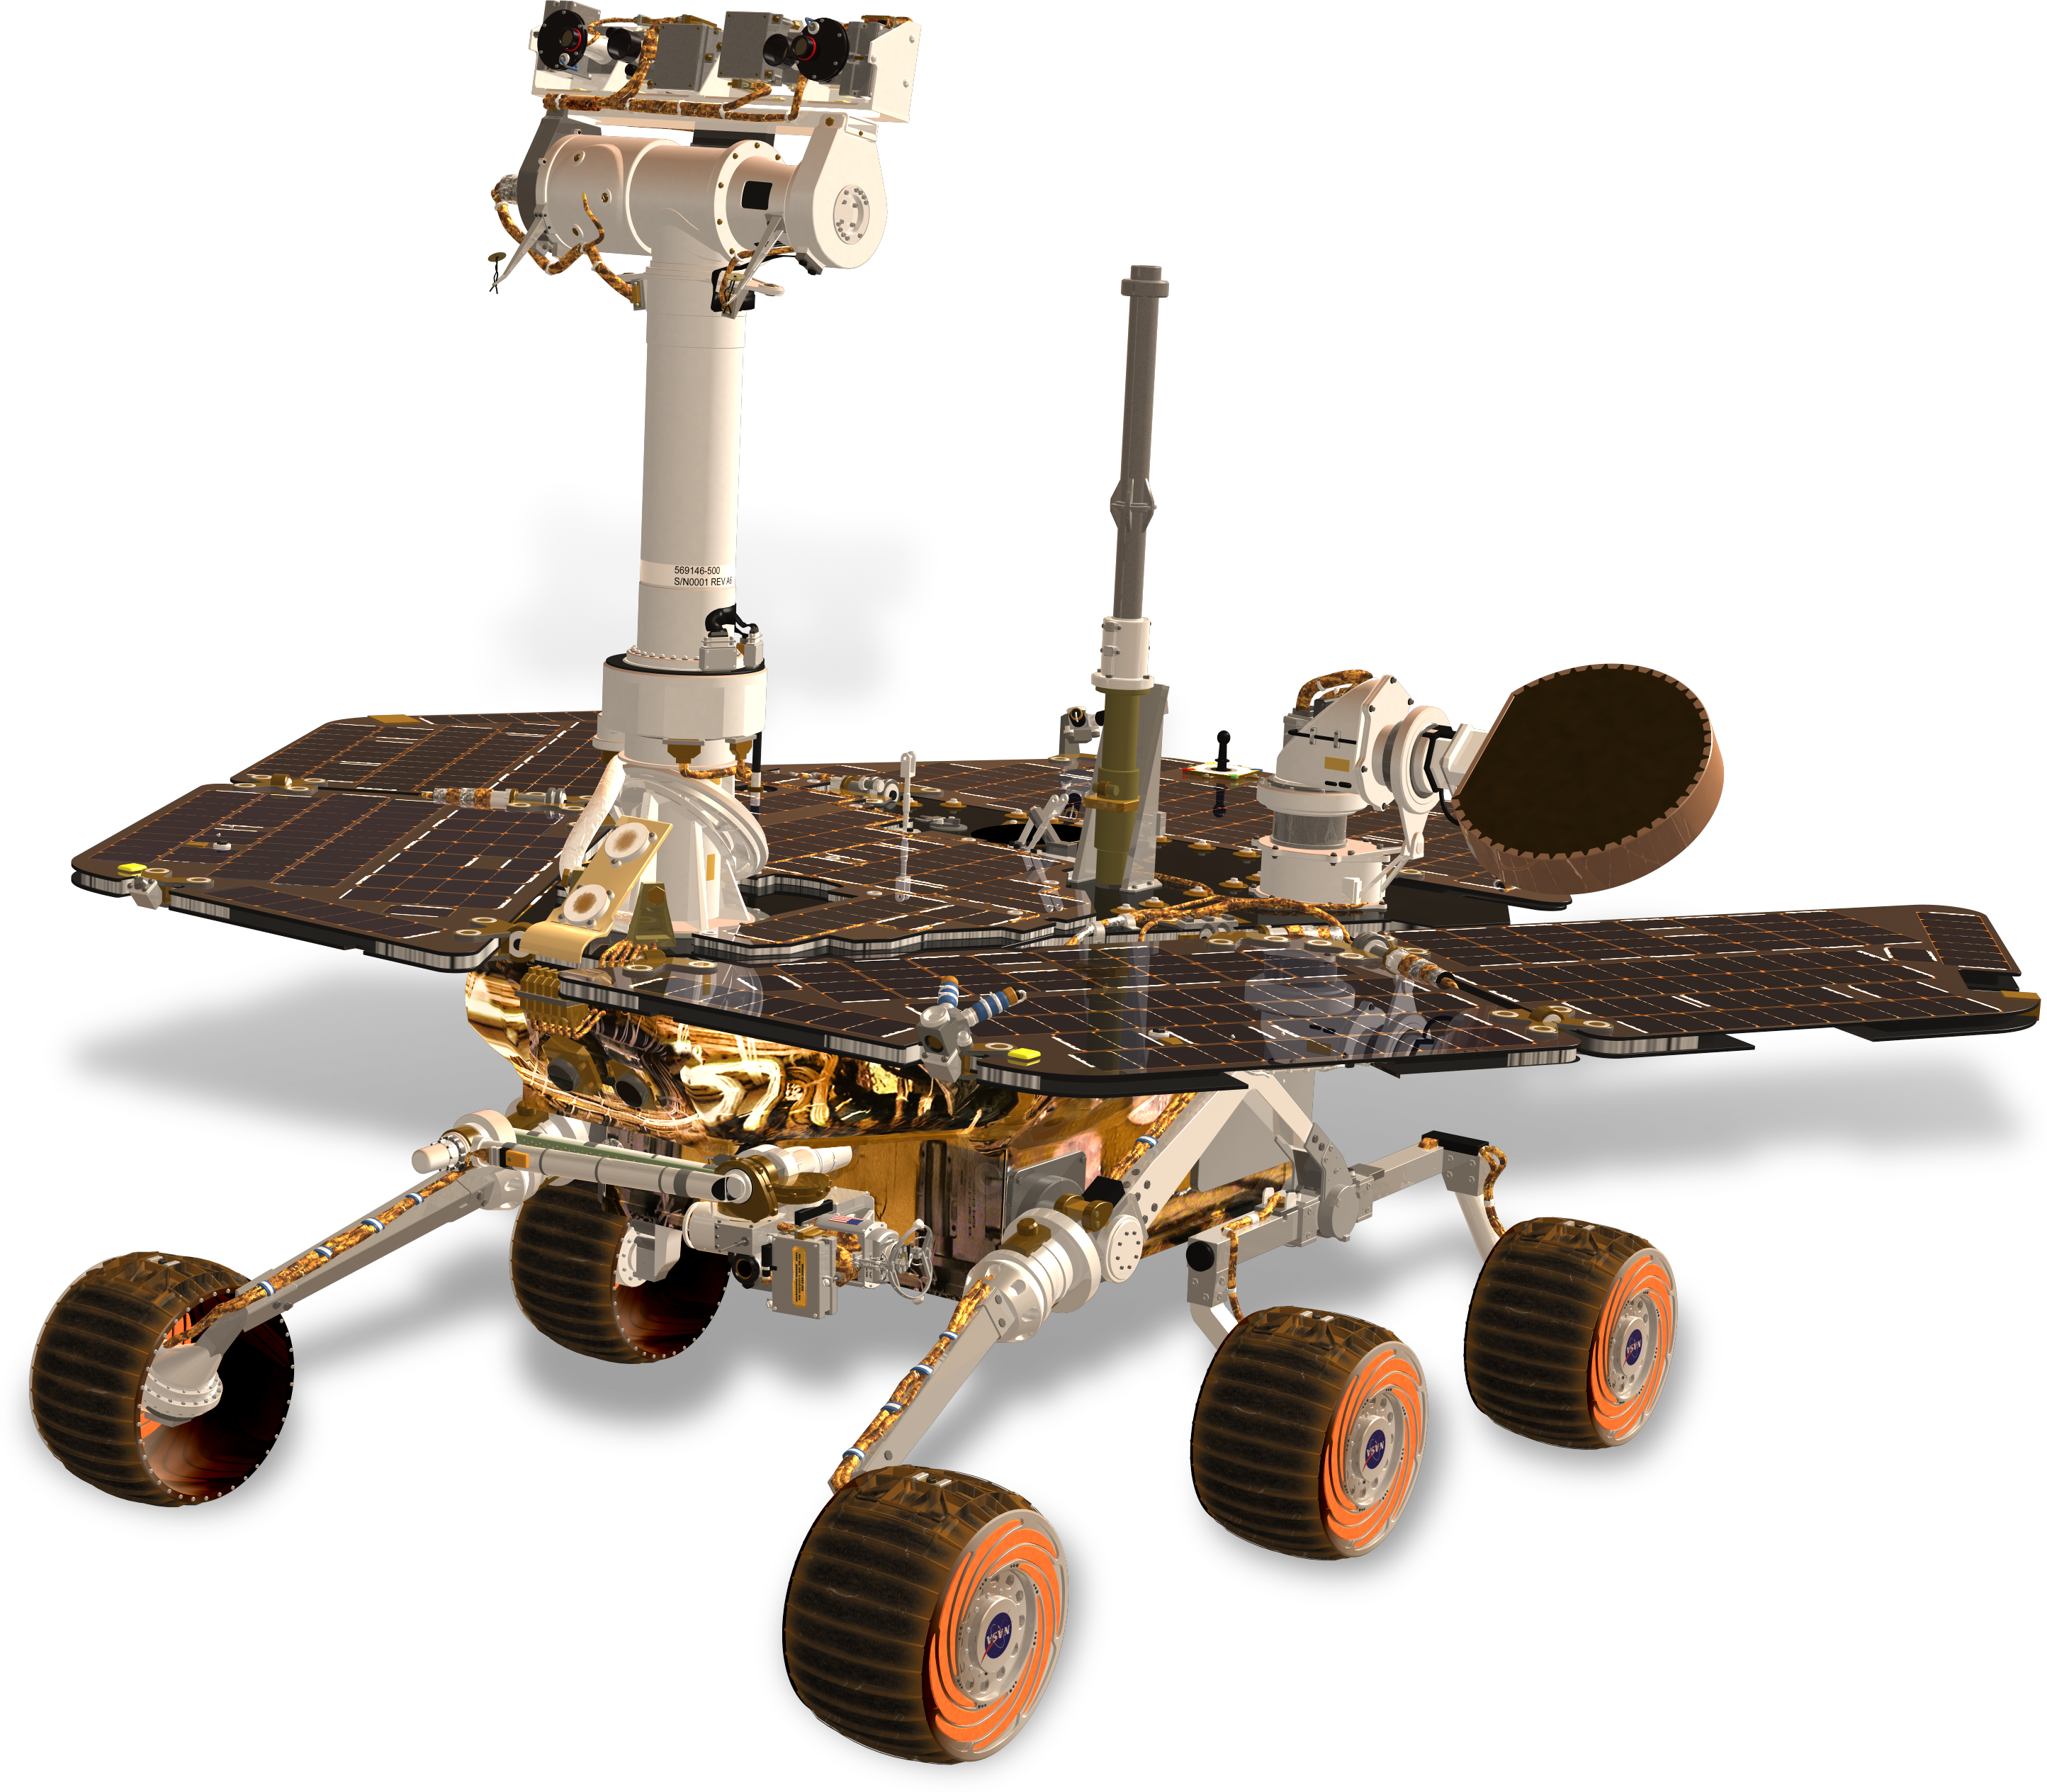 mars rover spirit - photo #14